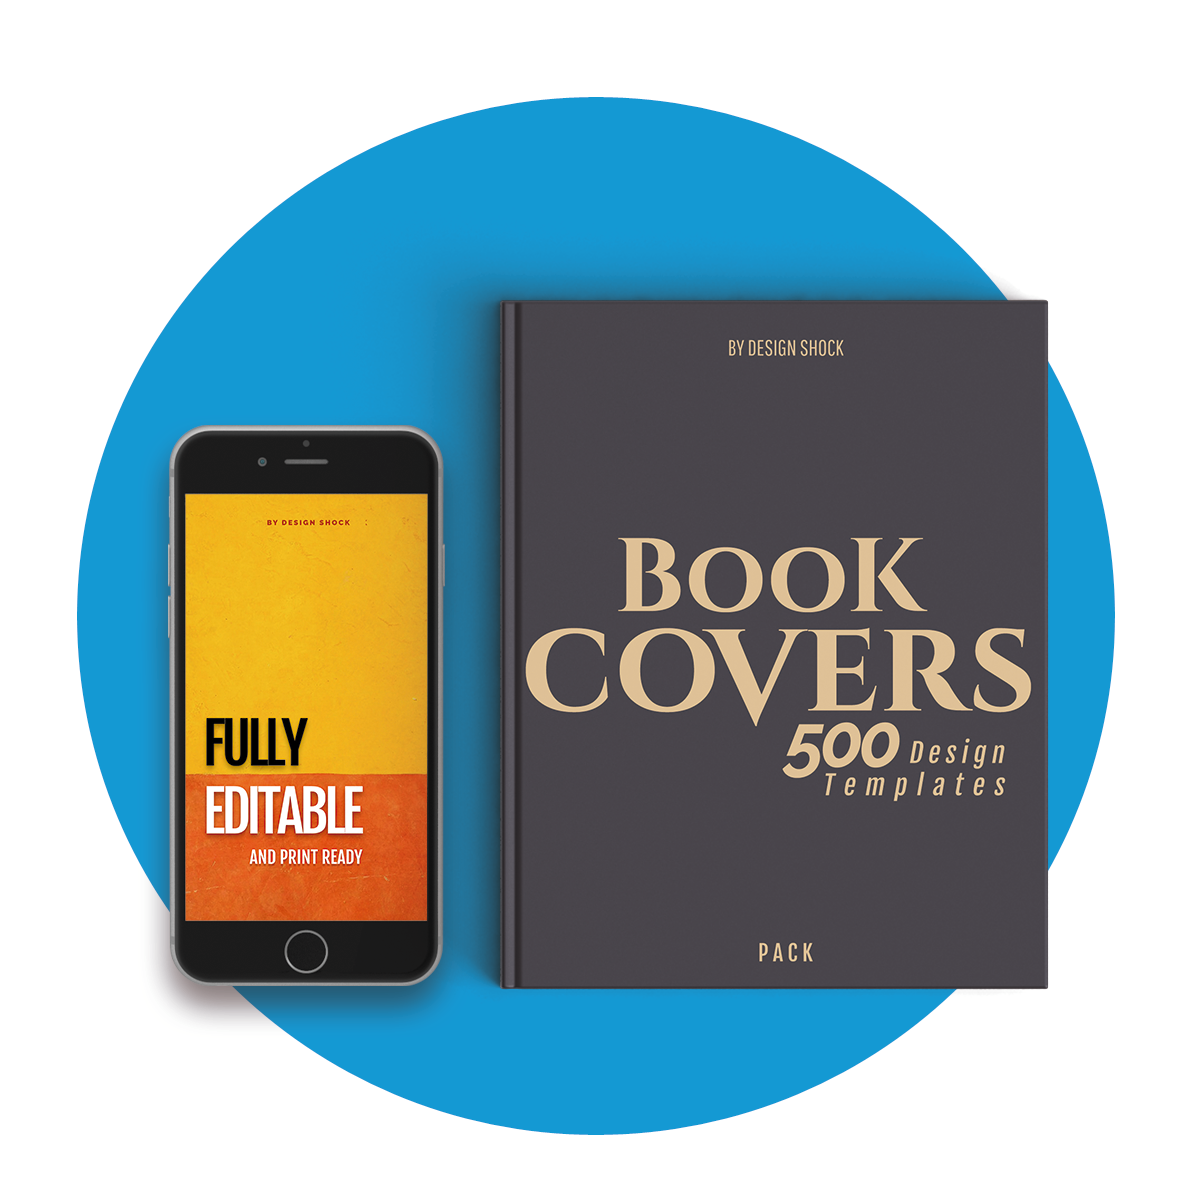 500 psd book cover templates on behance